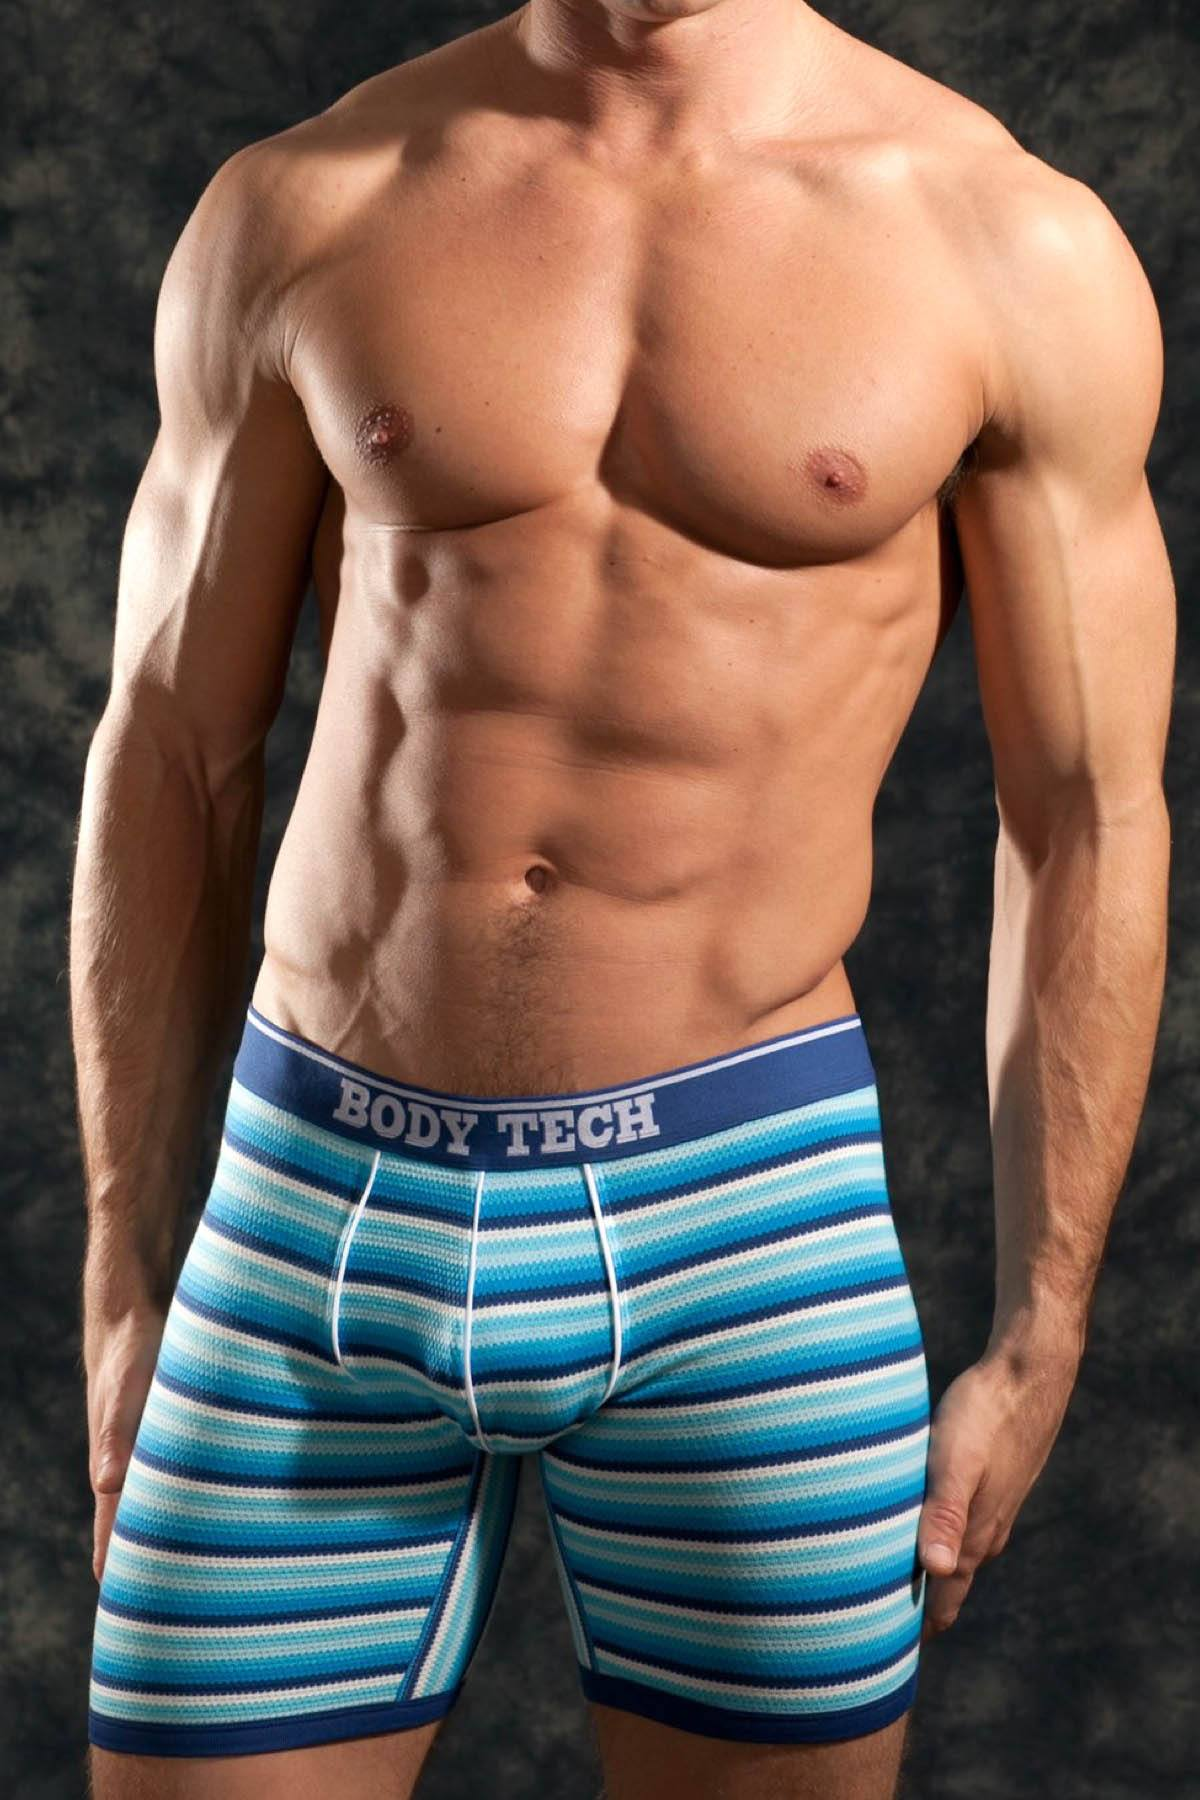 Body Tech Blue Striped Boxer Brief